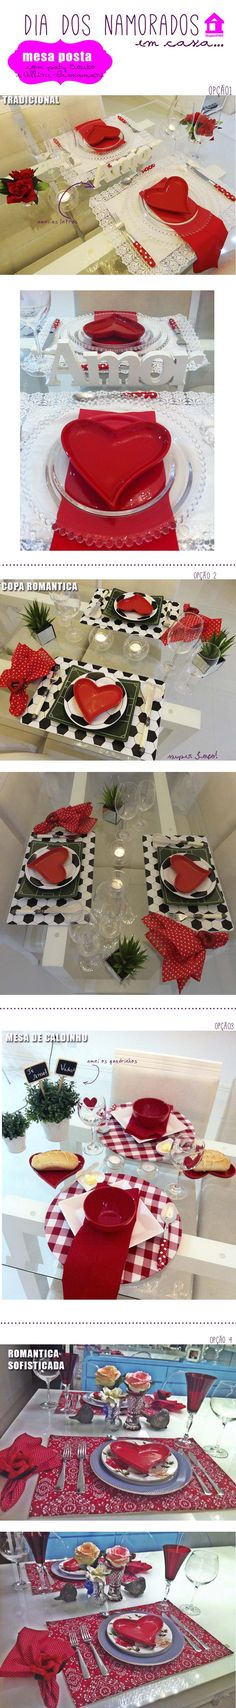 Tablescapes valentines day mesa posta para o namorado dia dos namorados decor table